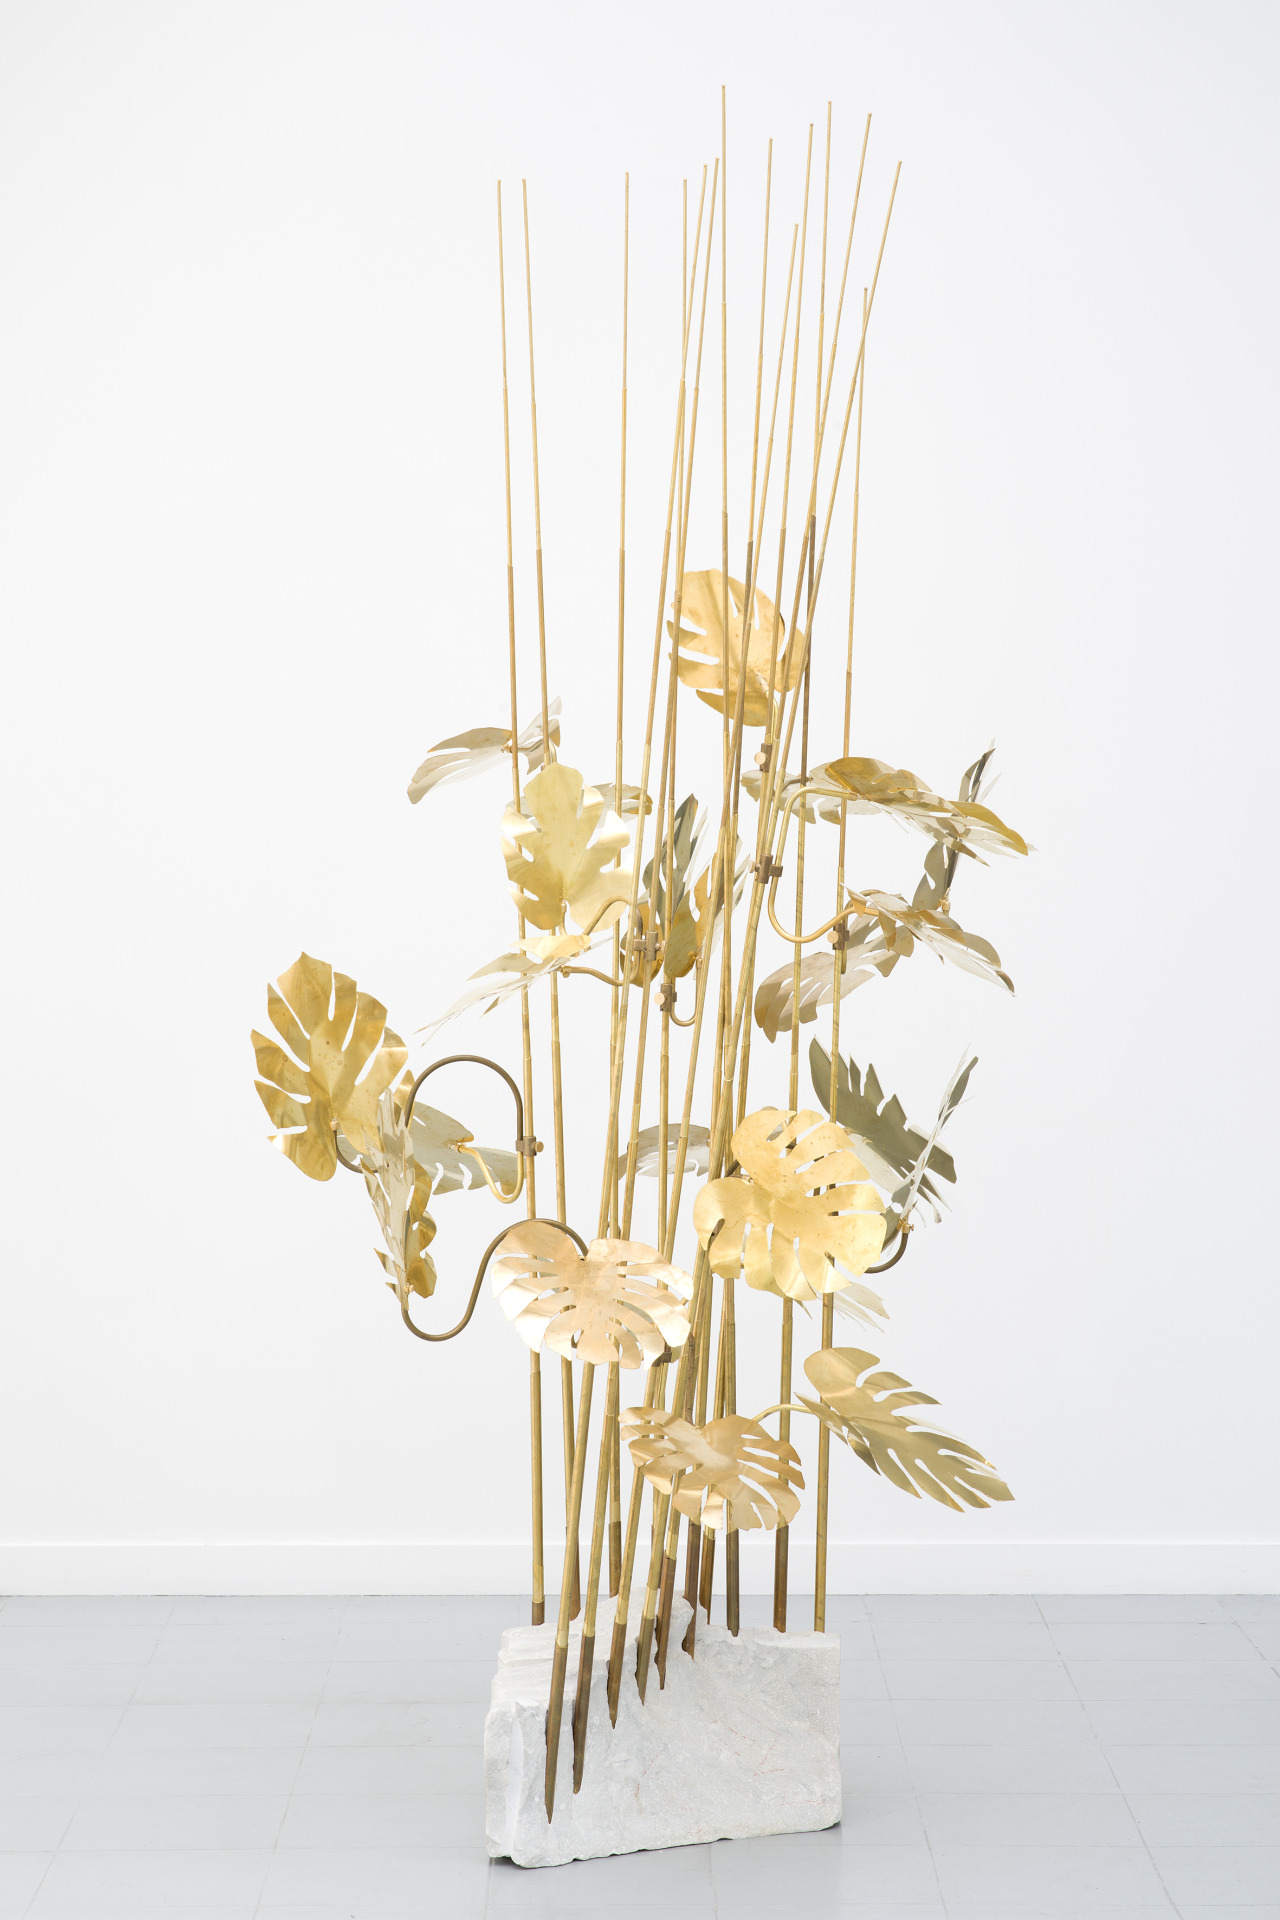 Sharp points lower the required voltage, electric fields are more concentrated in areas of high curvature, phenomena more intense at ends of pointed objects, 2014. Brass, marble. Dimensions variable. Courtesy of the artist.